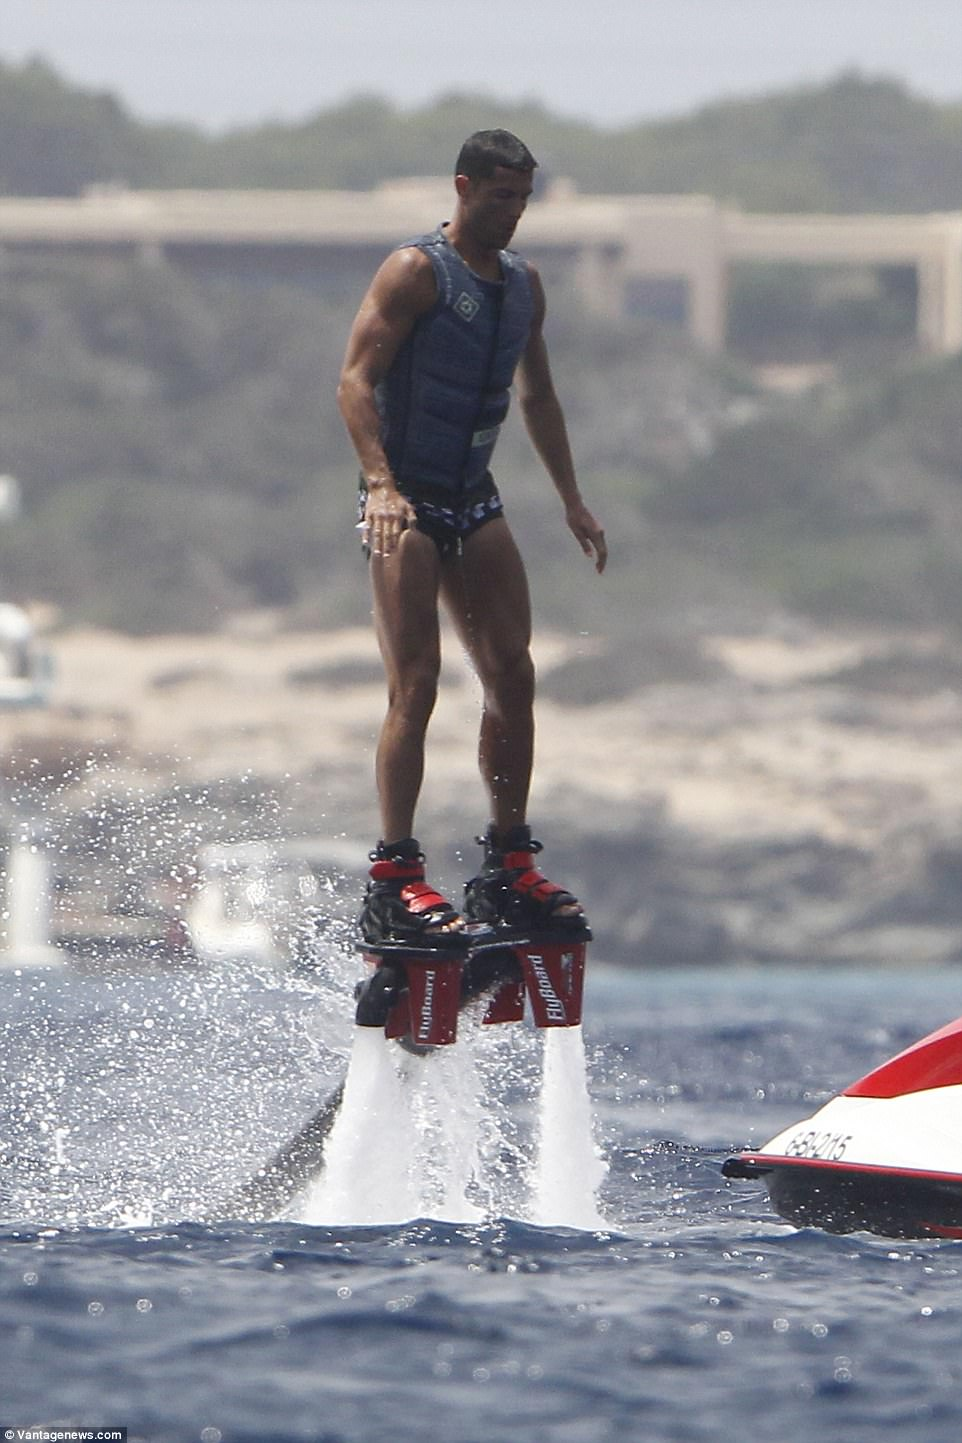 Up in the air: At one point during flyboarding, it looked like he was levitating